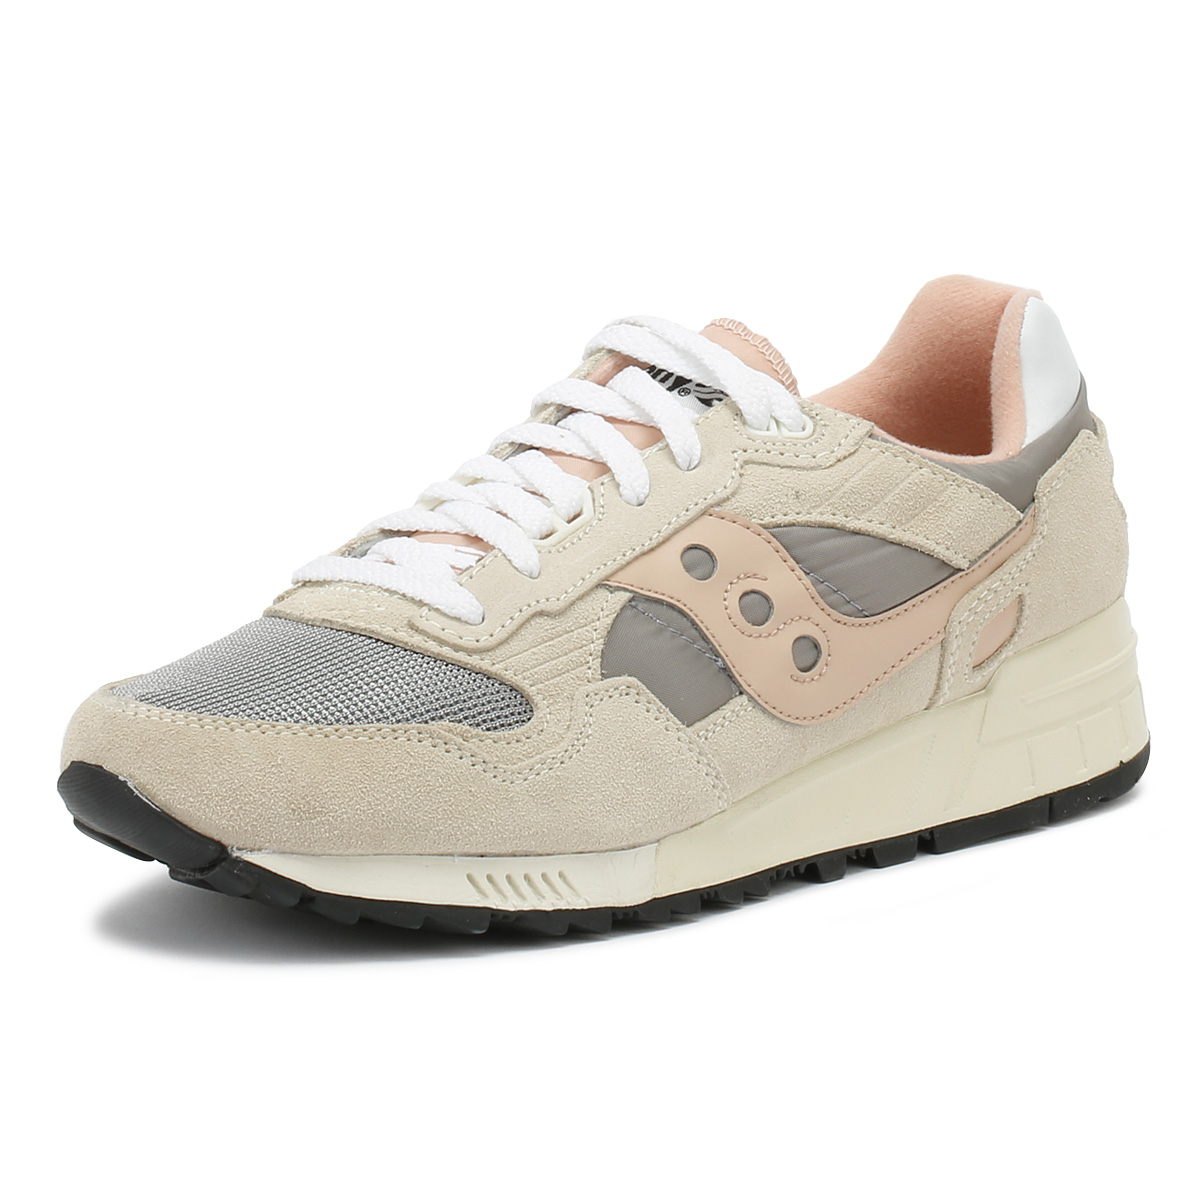 size 40 55965 faf82 Details about Saucony Shadow 5000 Mens Trainers Off White Grey & Pink Sport  Casual Shoes